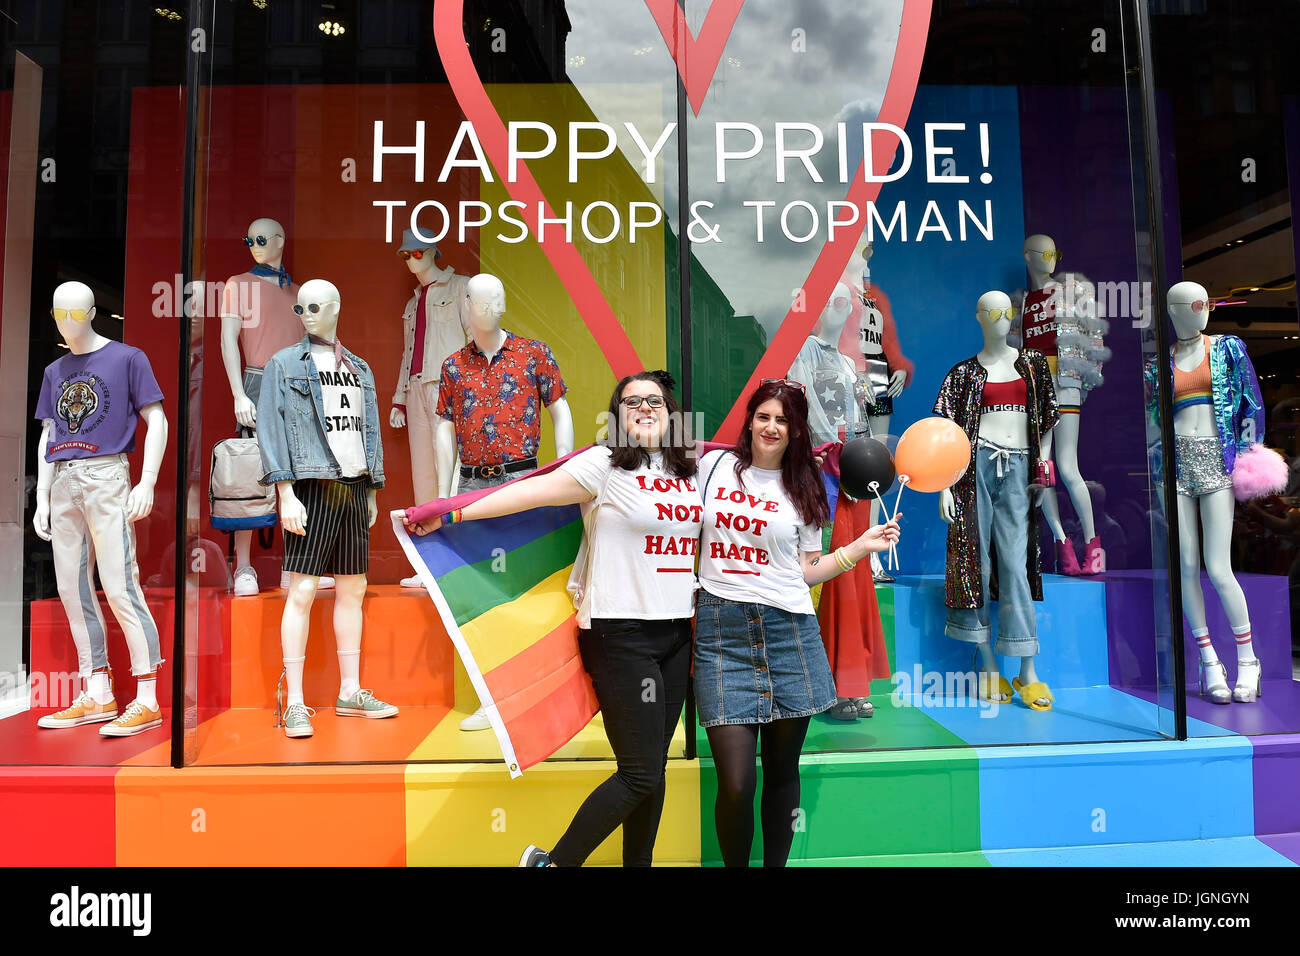 London, UK. 08th July, 2017. Two girls posed a photo in front of the Top Shop on the Oxford Street during Pride - Stock Image